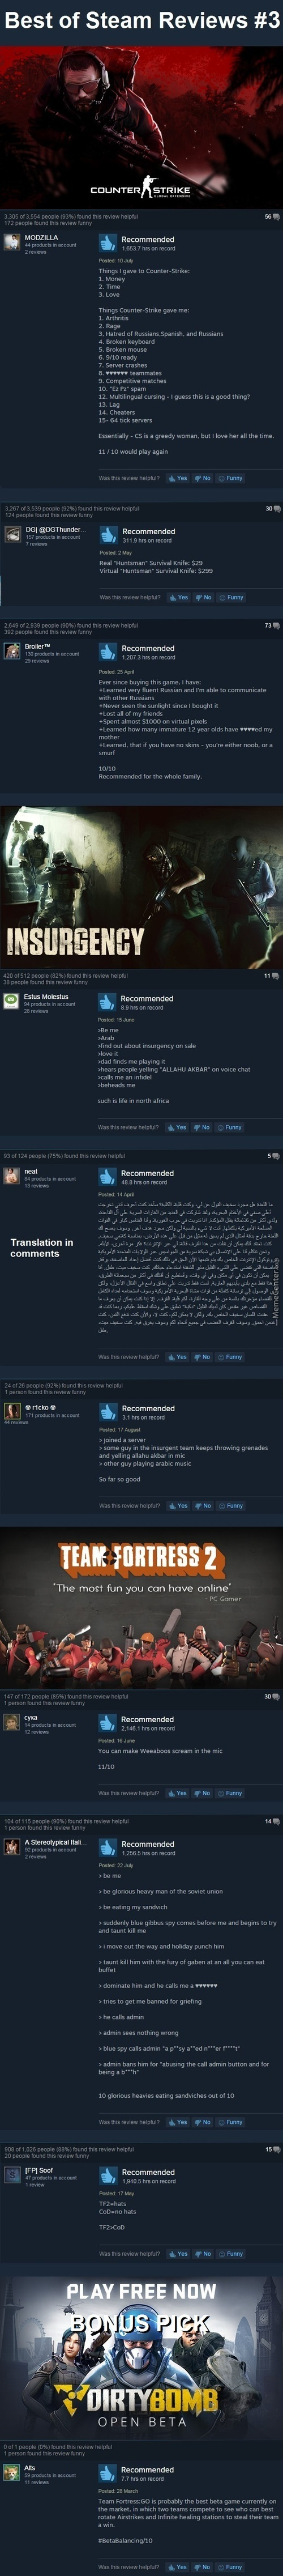 Best Steam Reviews #4 - Competitive Fps